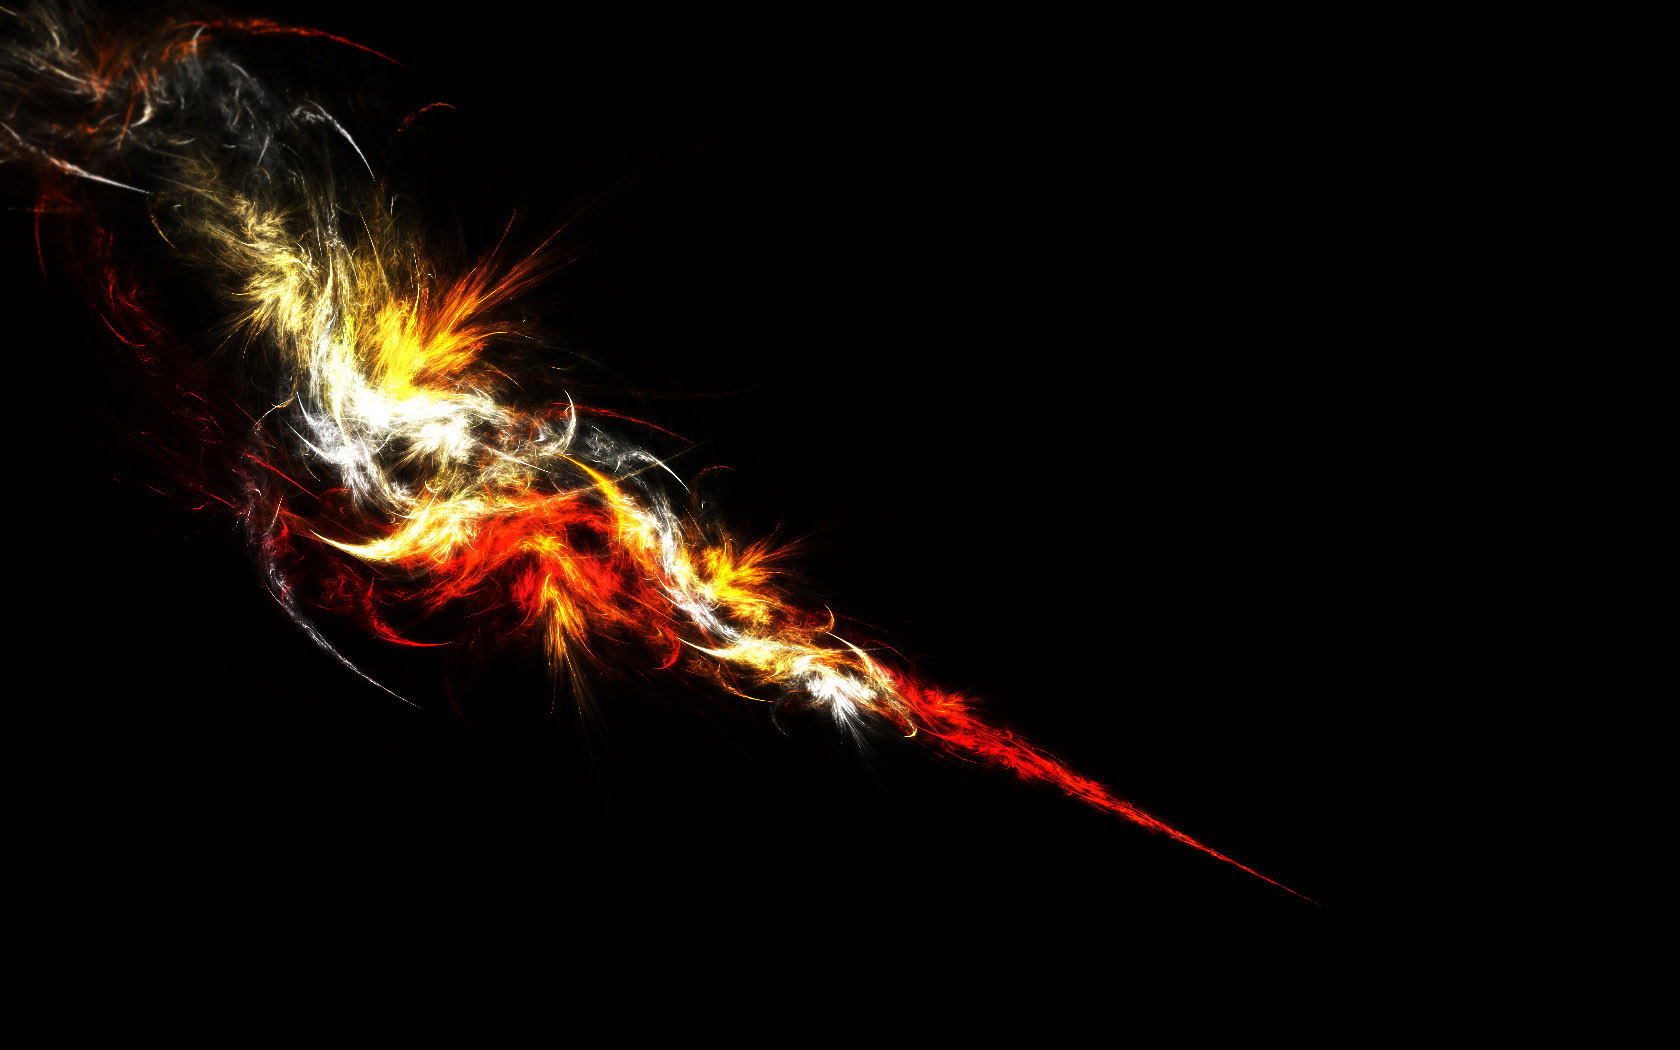 Hd wallpaper wide - Flash Of Fire Hd Wide Wallpaper For Widescreen 59 Wallpapers Hd Wallpapers